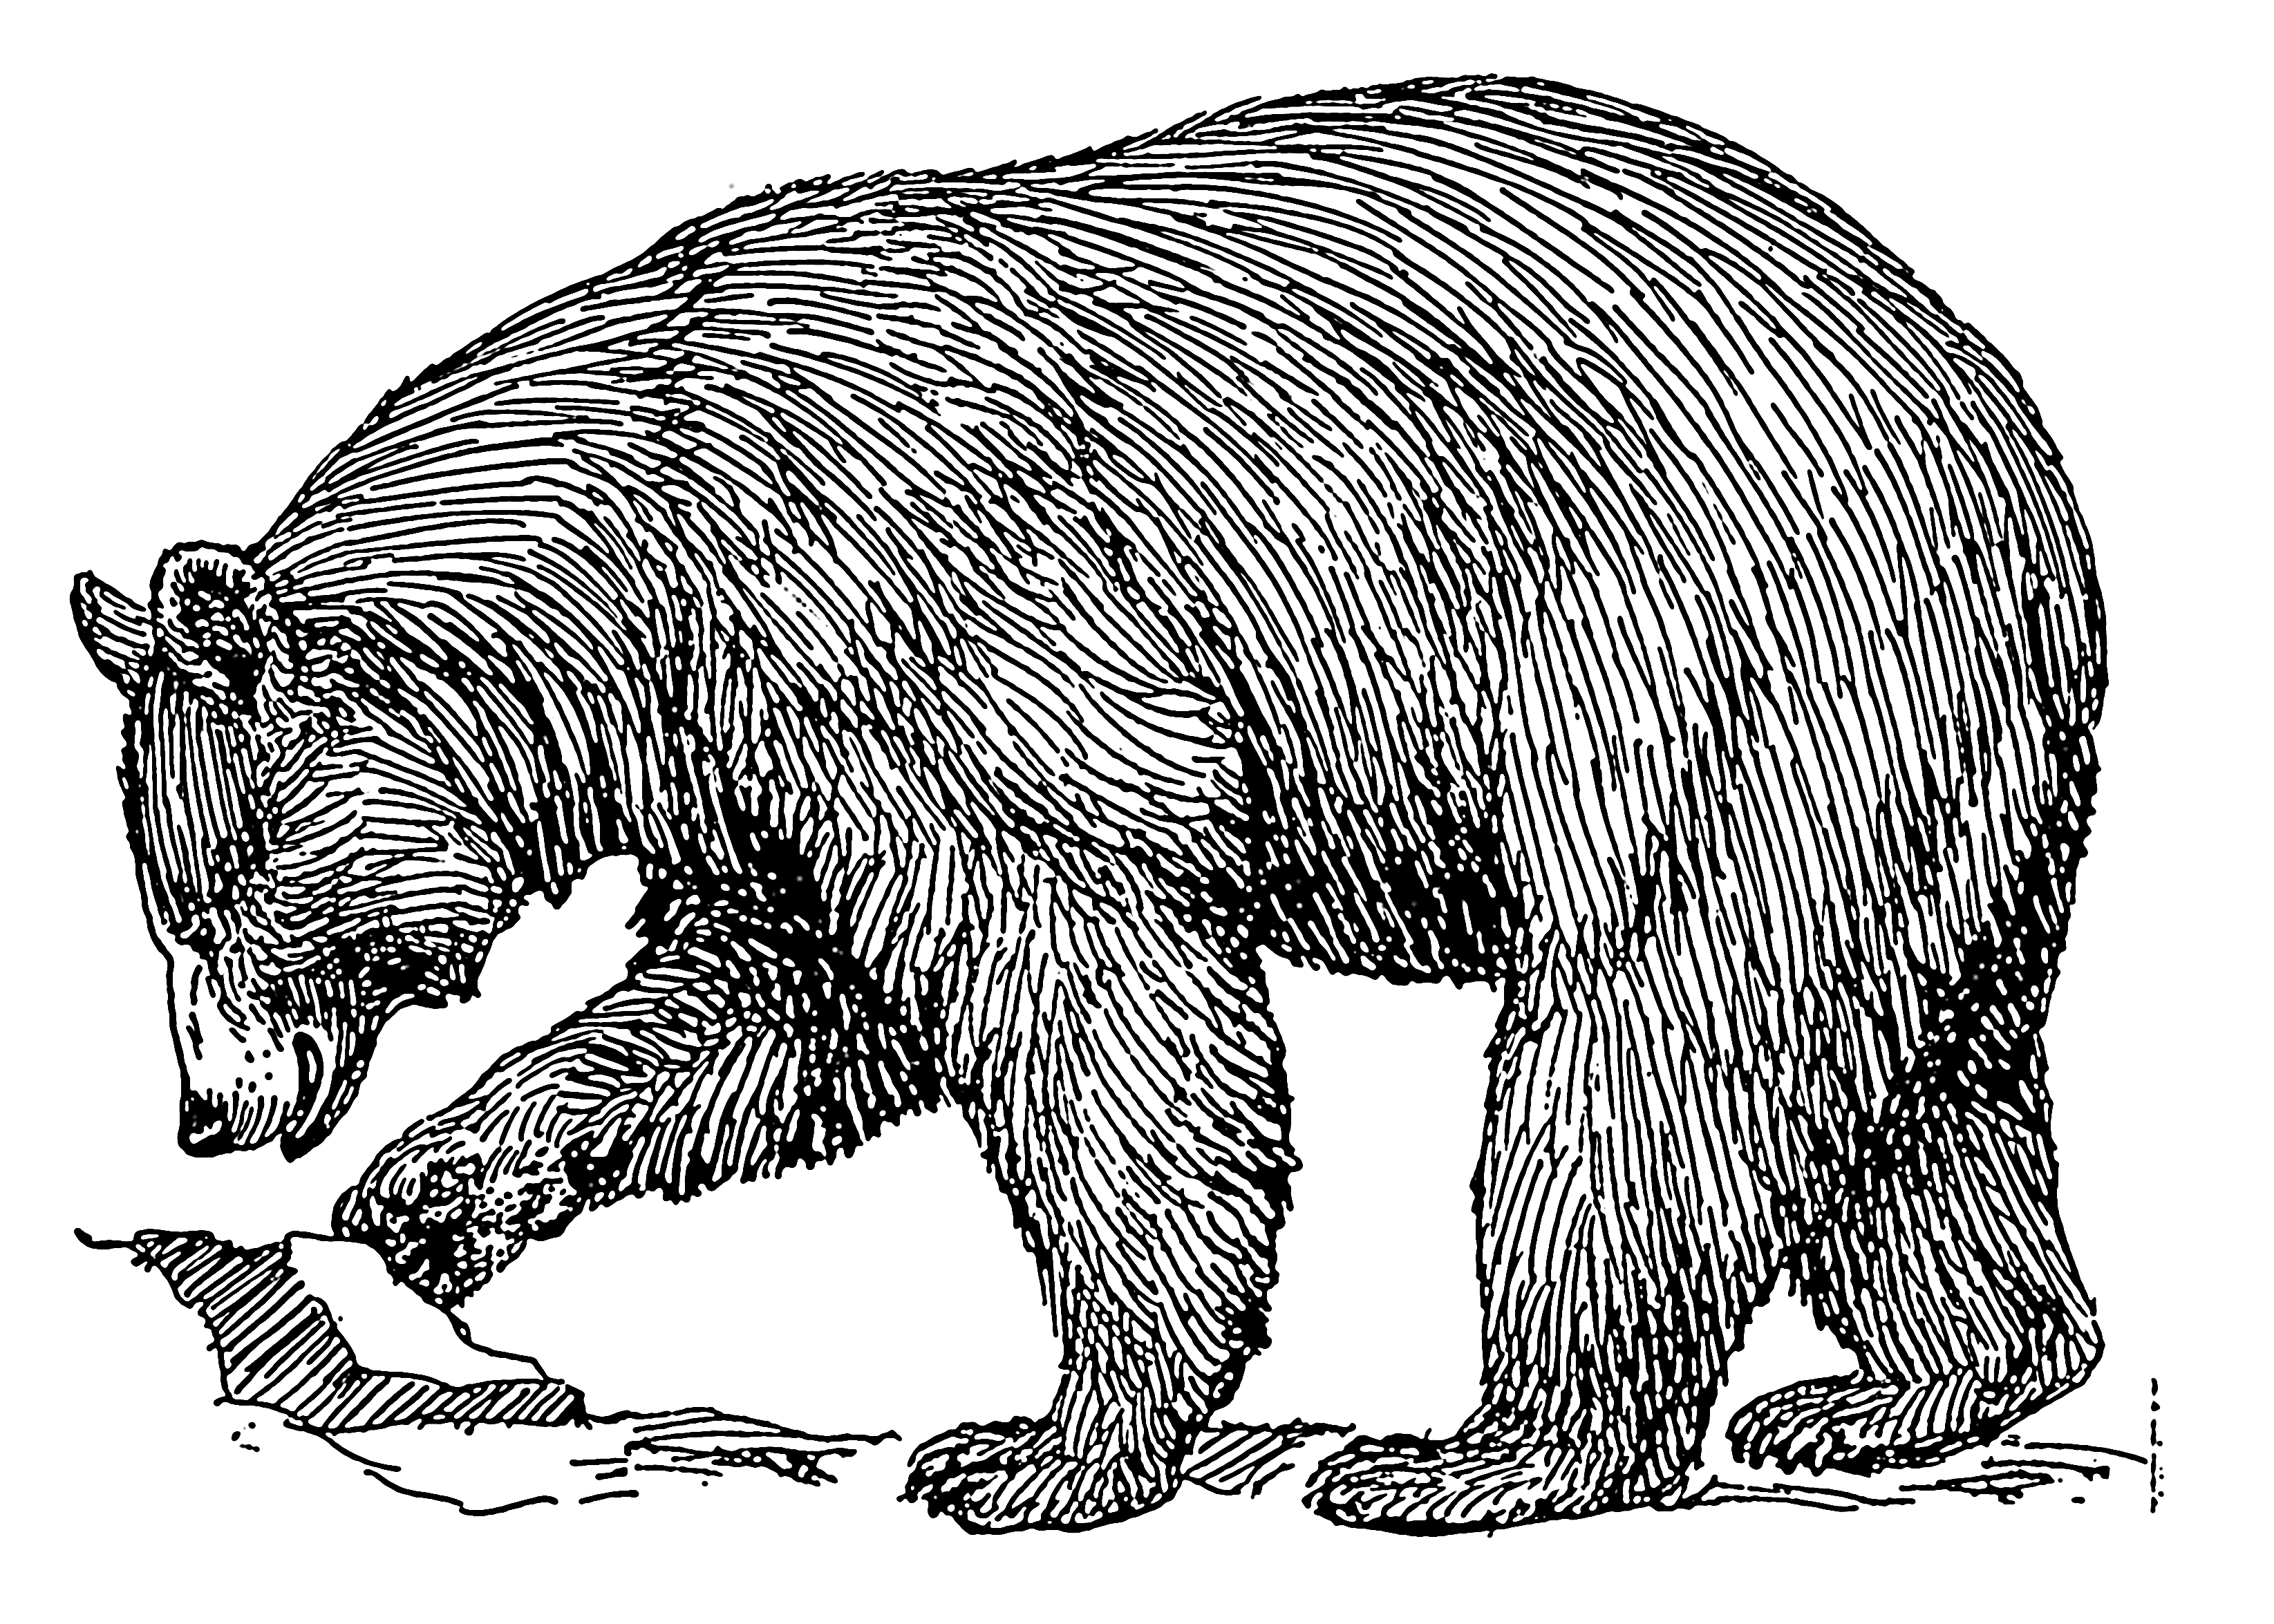 Bears drawing free download. Bear clip art realistic image library stock